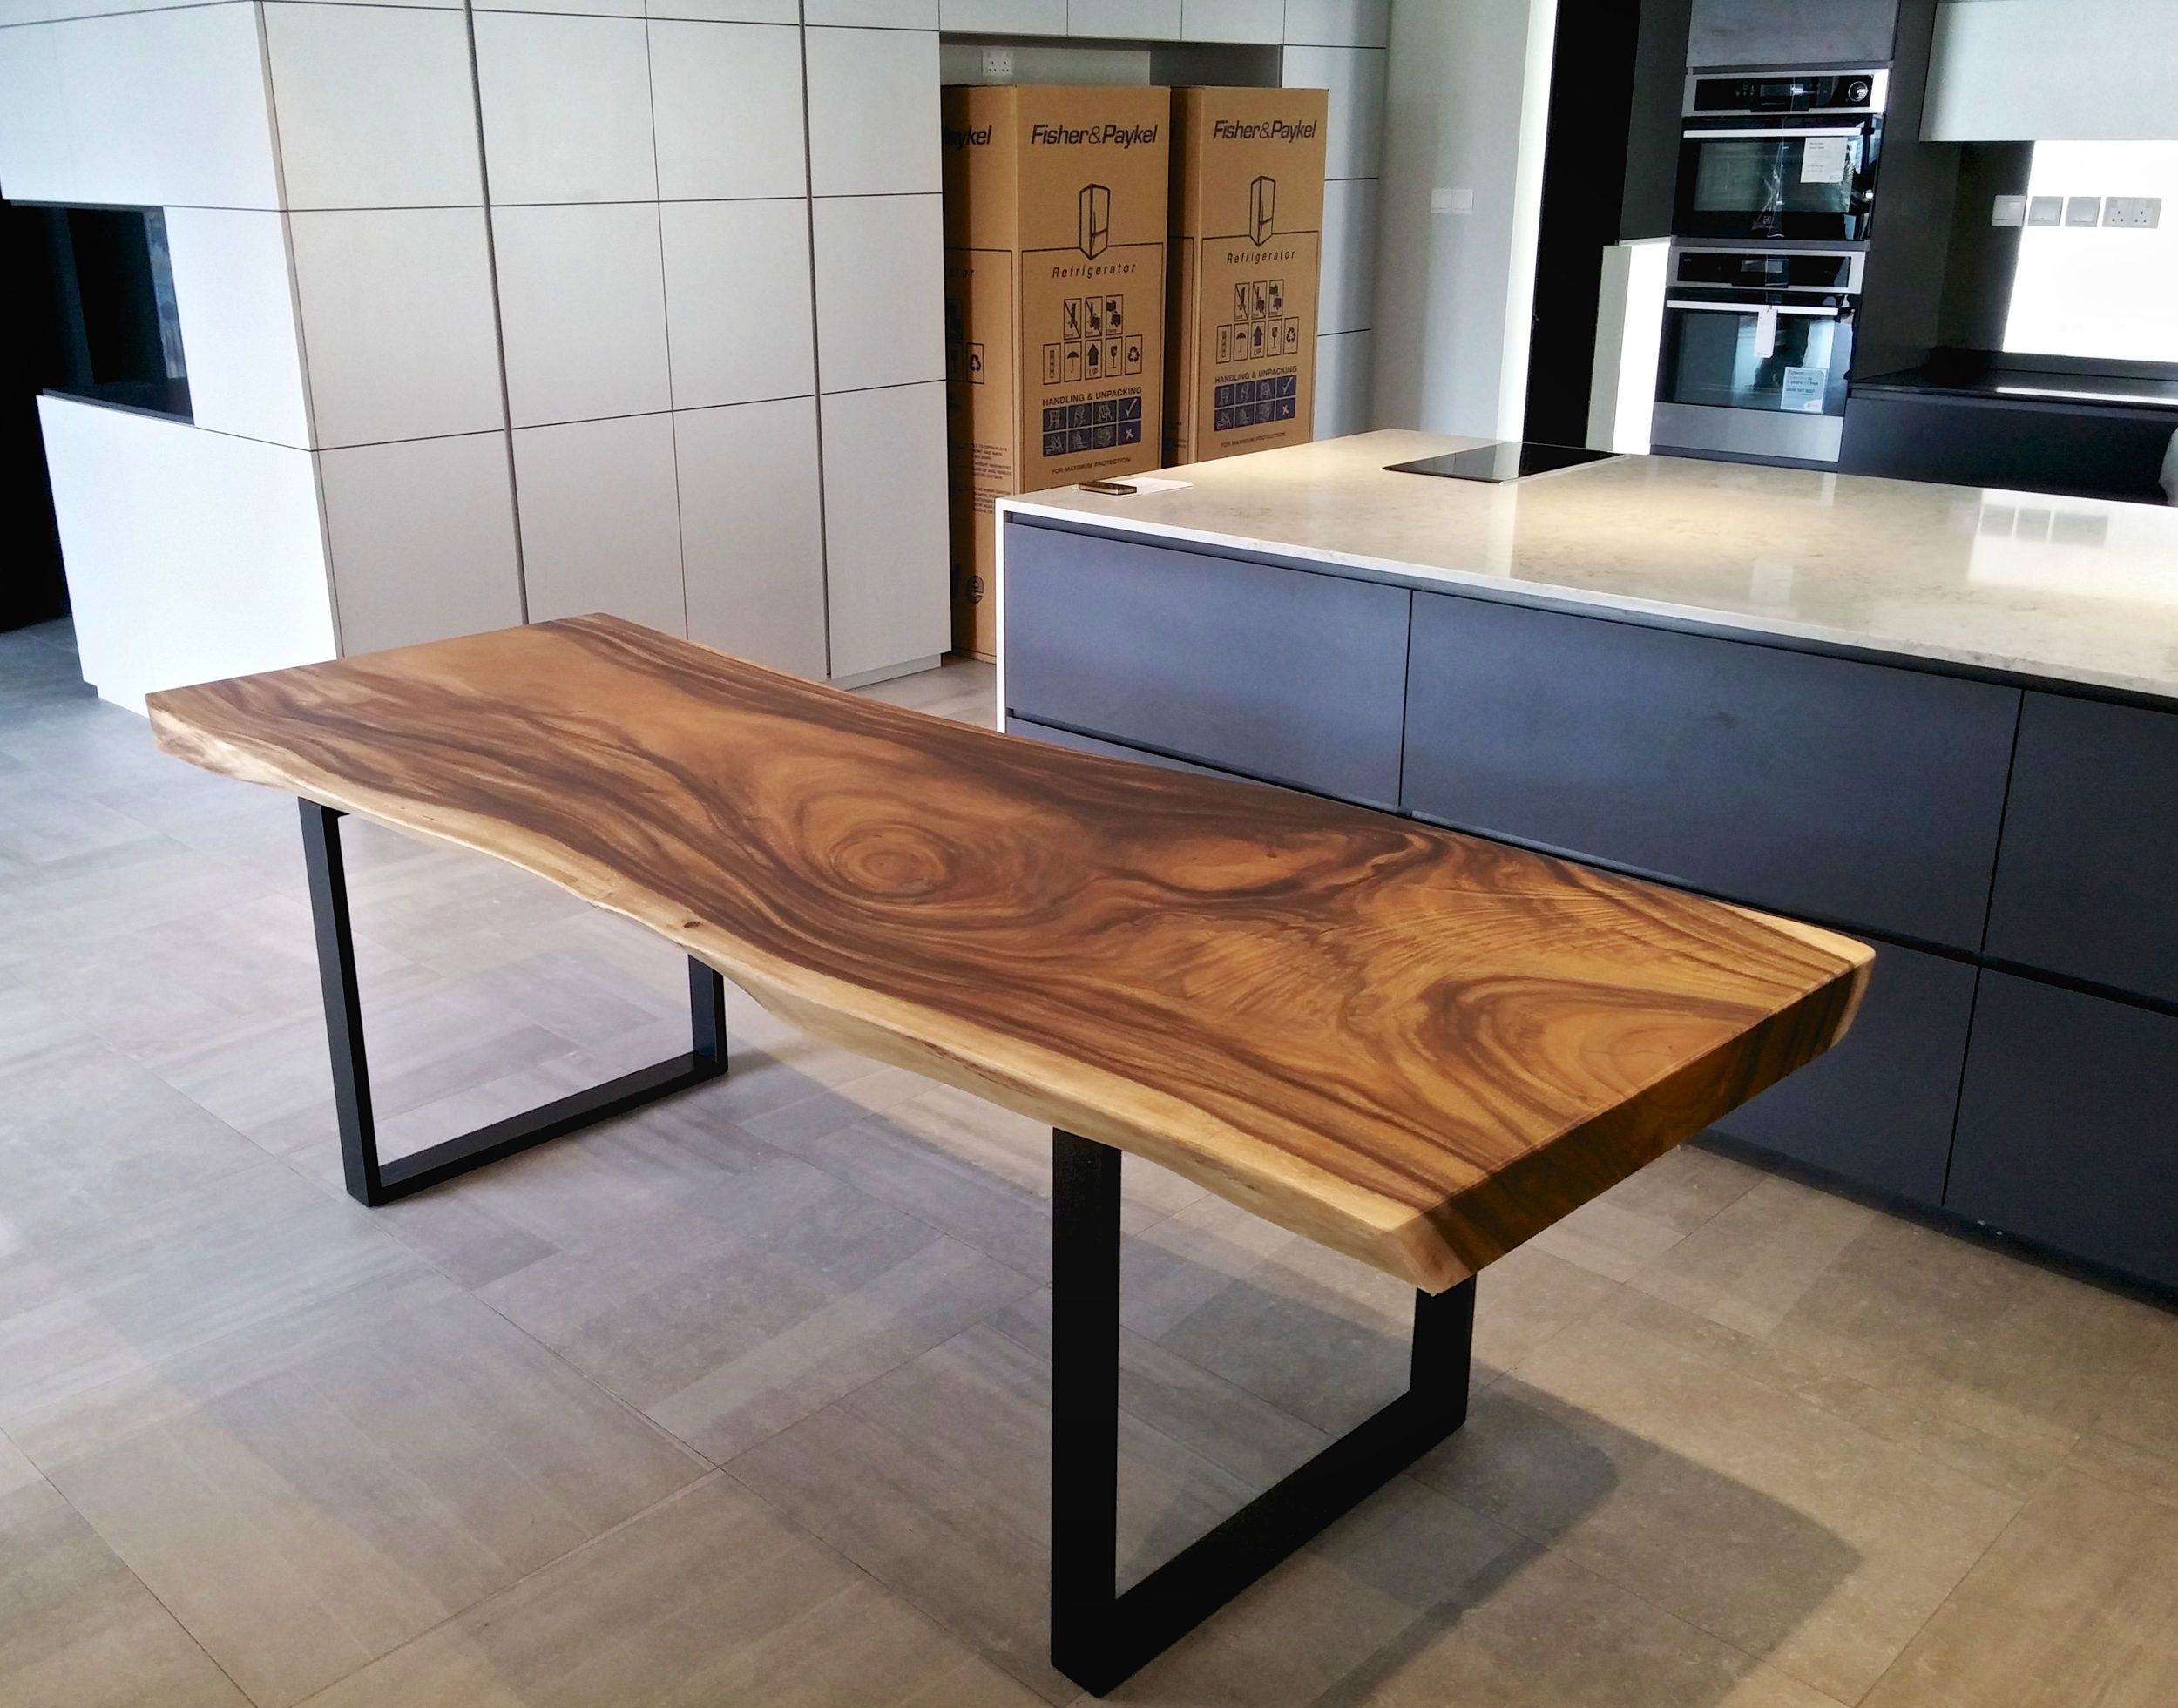 Solid Wood Dining Table with Black Metal Legs | Kitchen ...